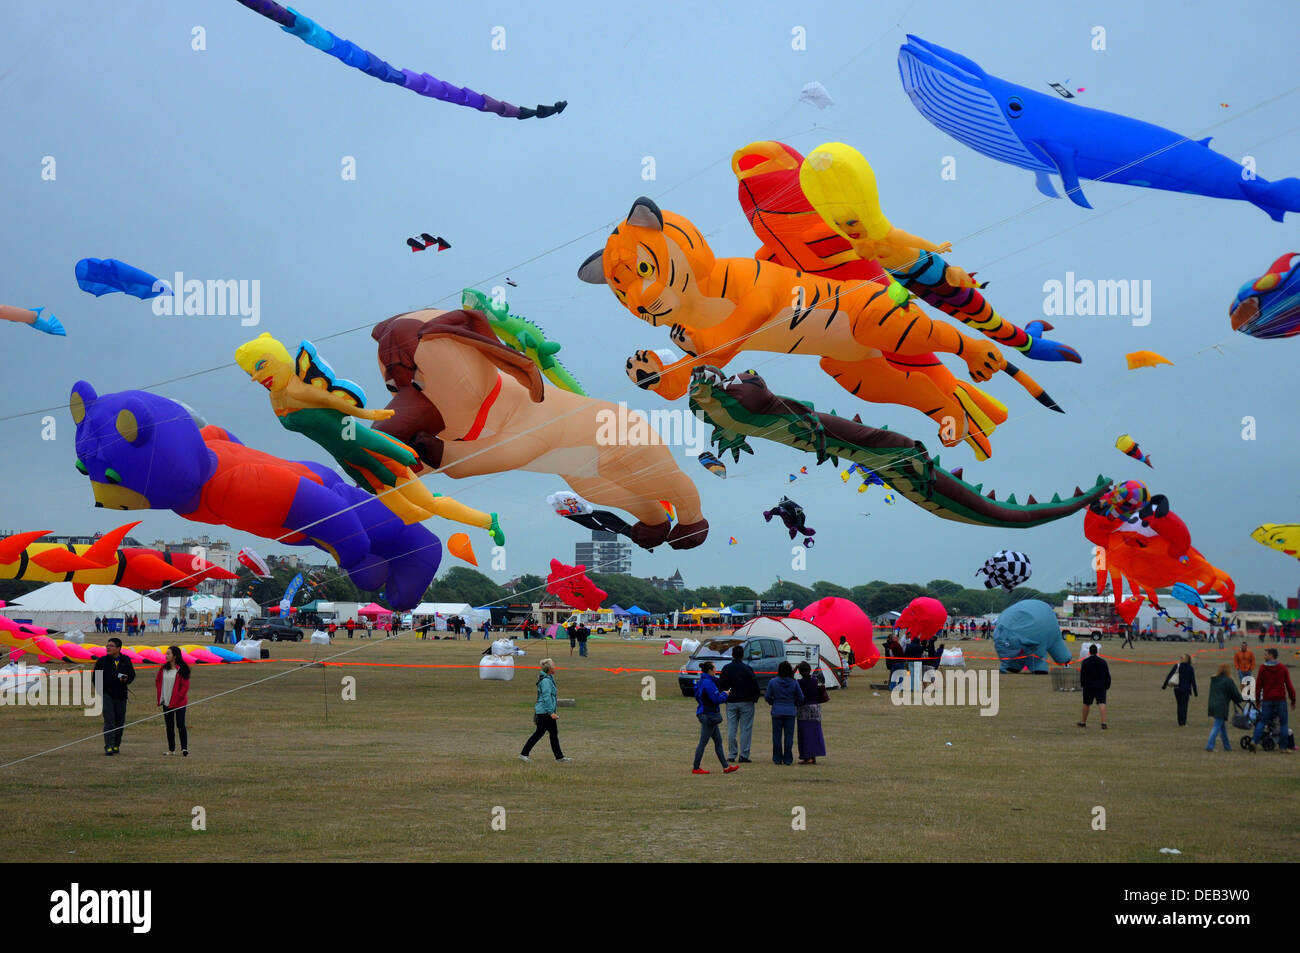 THE ANNUAL KITE FESTIVAL AT SOUTHSEA, HAMPSHIRE AUGUST 2013 Stock Photo